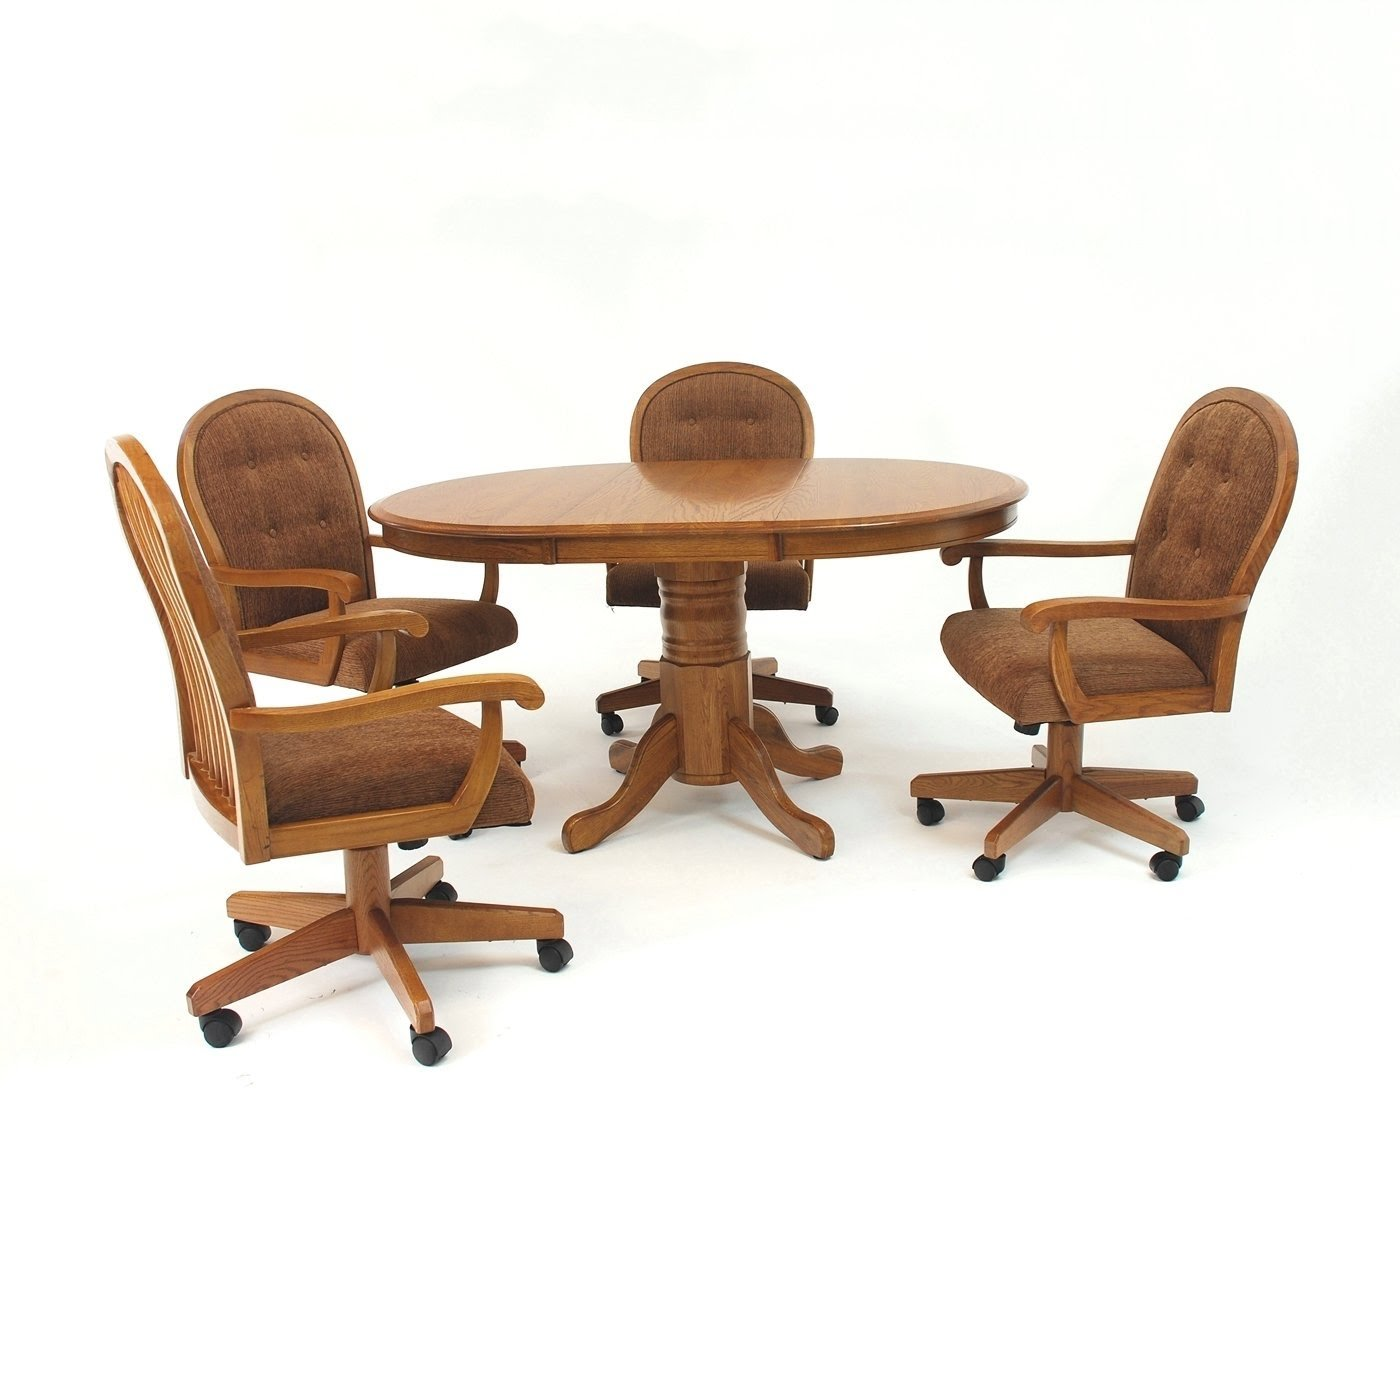 Dining Chairs With Casters You Ll Love, Padded Dining Room Chairs With Casters